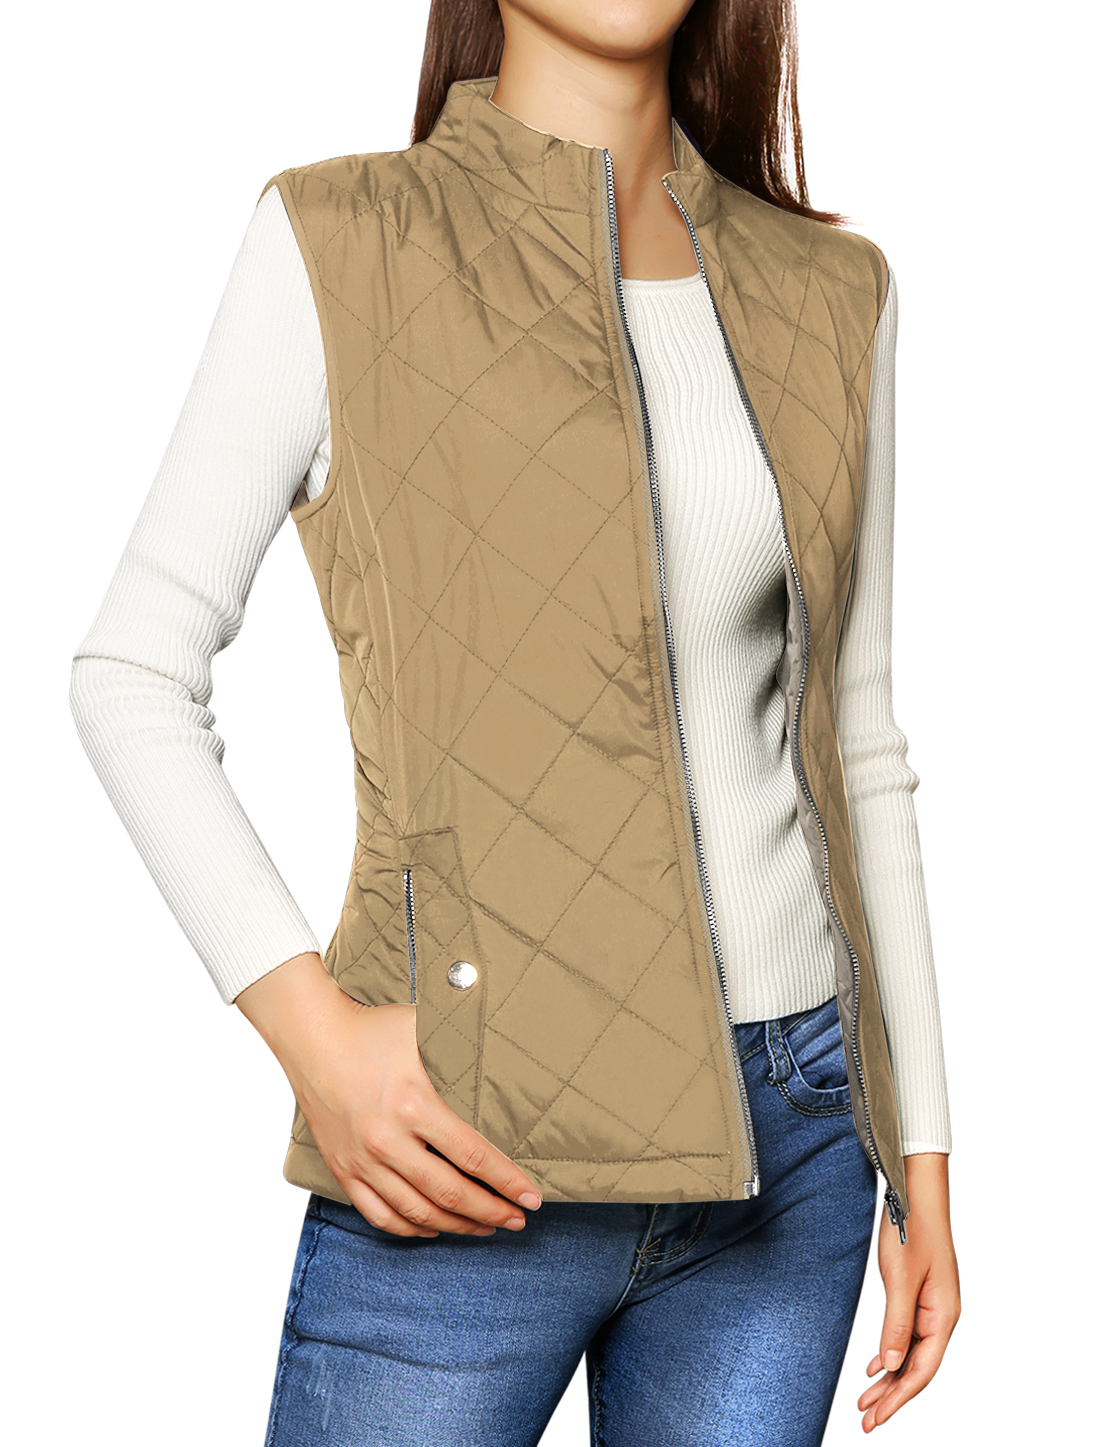 Allegra K Woman Zip Up Front Pockets Quilted Padded Vest Khaki M (US 10)